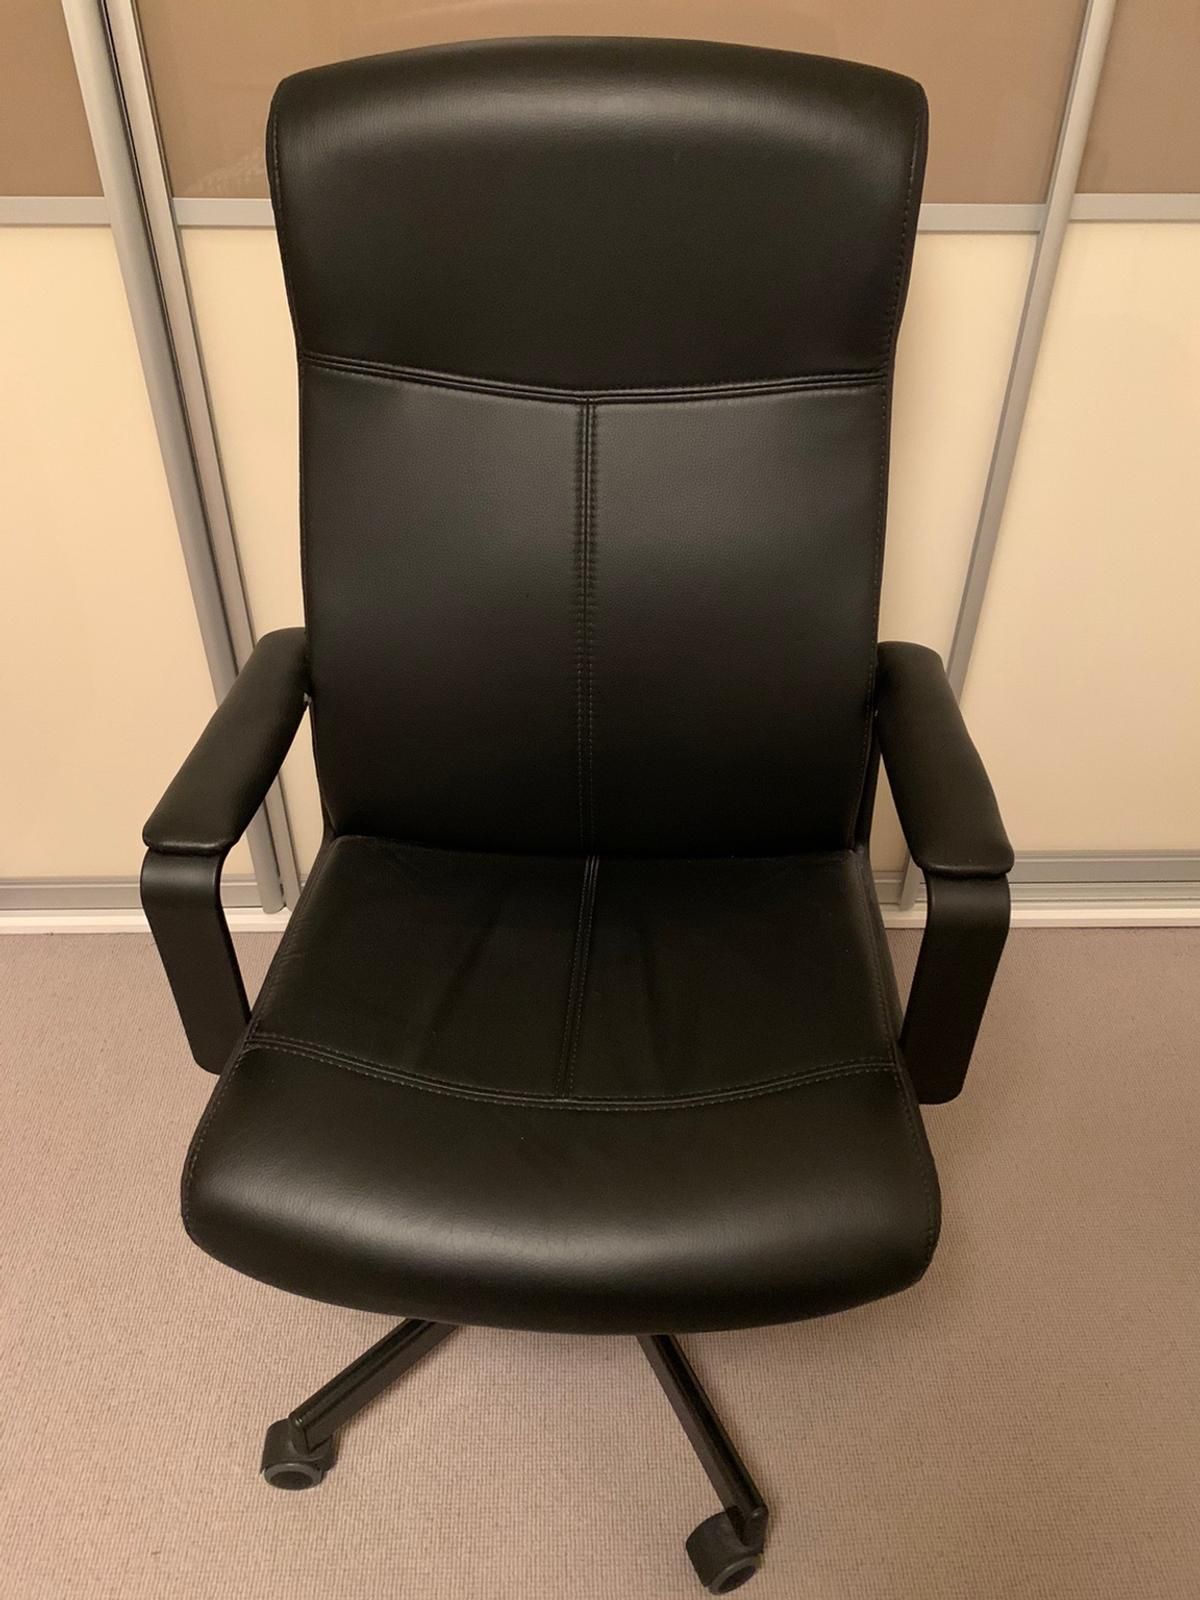 Ikea Black Millberget Desk Chair In W6 Fulham For 22 00 For Sale Shpock